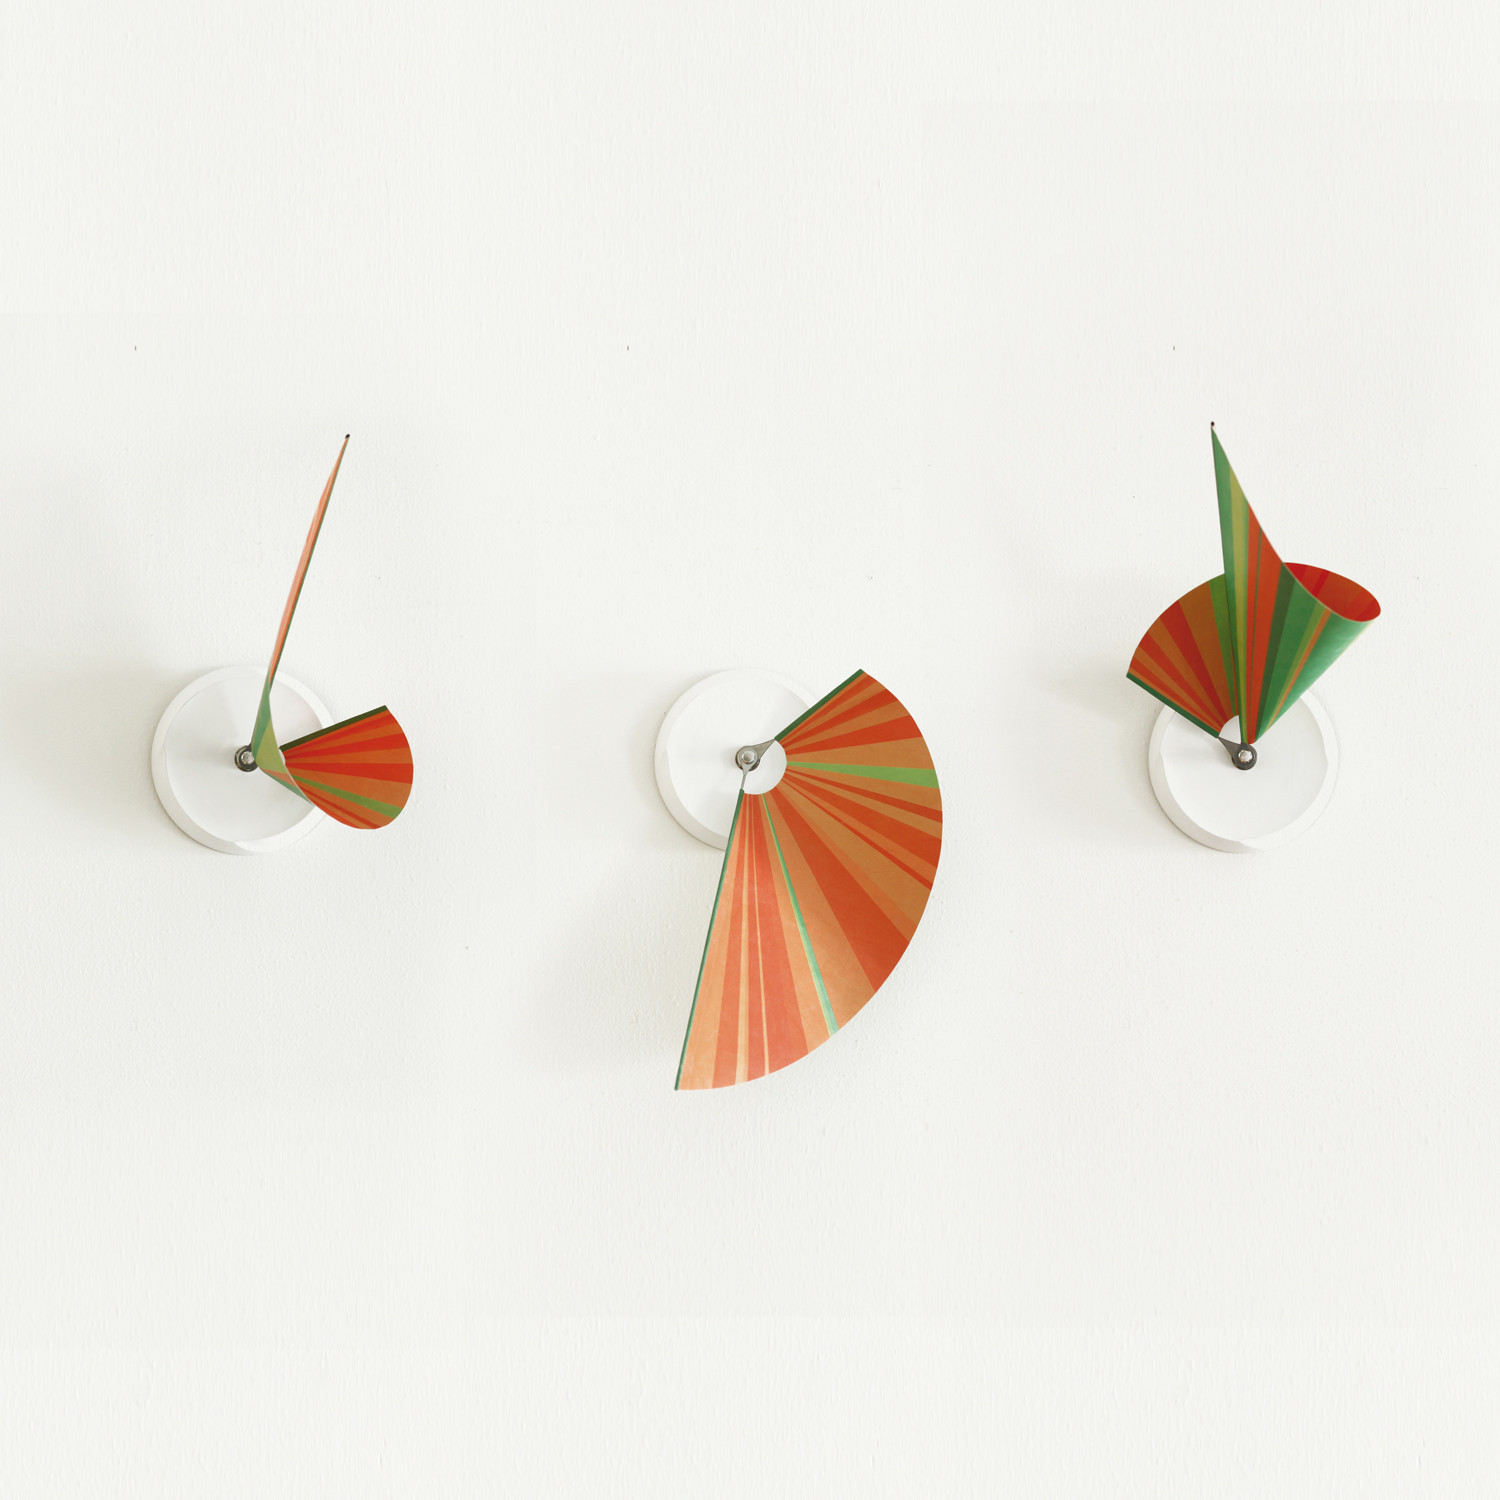 Manifold Clock Green & Orange Stripes 14'' by Shay Carmon and Ben Klinger